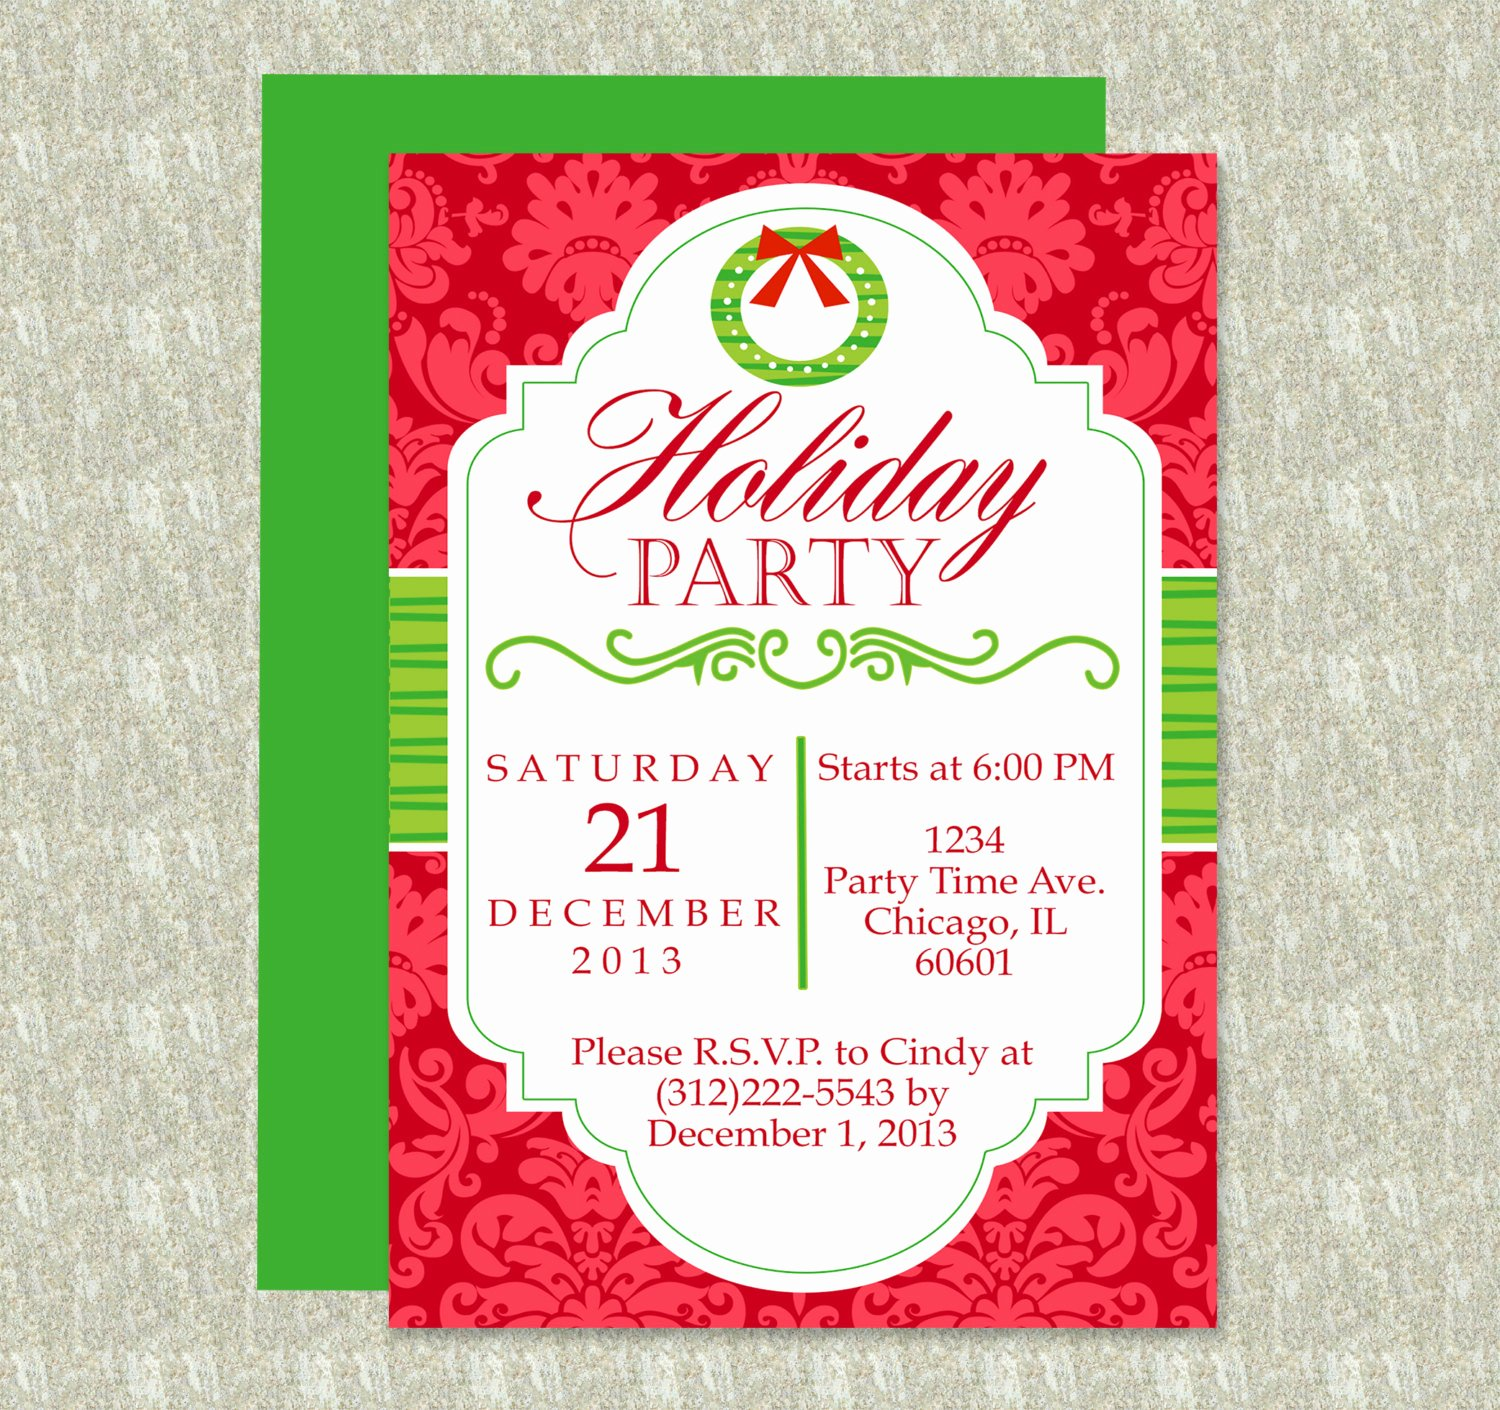 Free Holiday Flyer Template Elegant Holiday Party Invitation Editable Template Microsoft Word